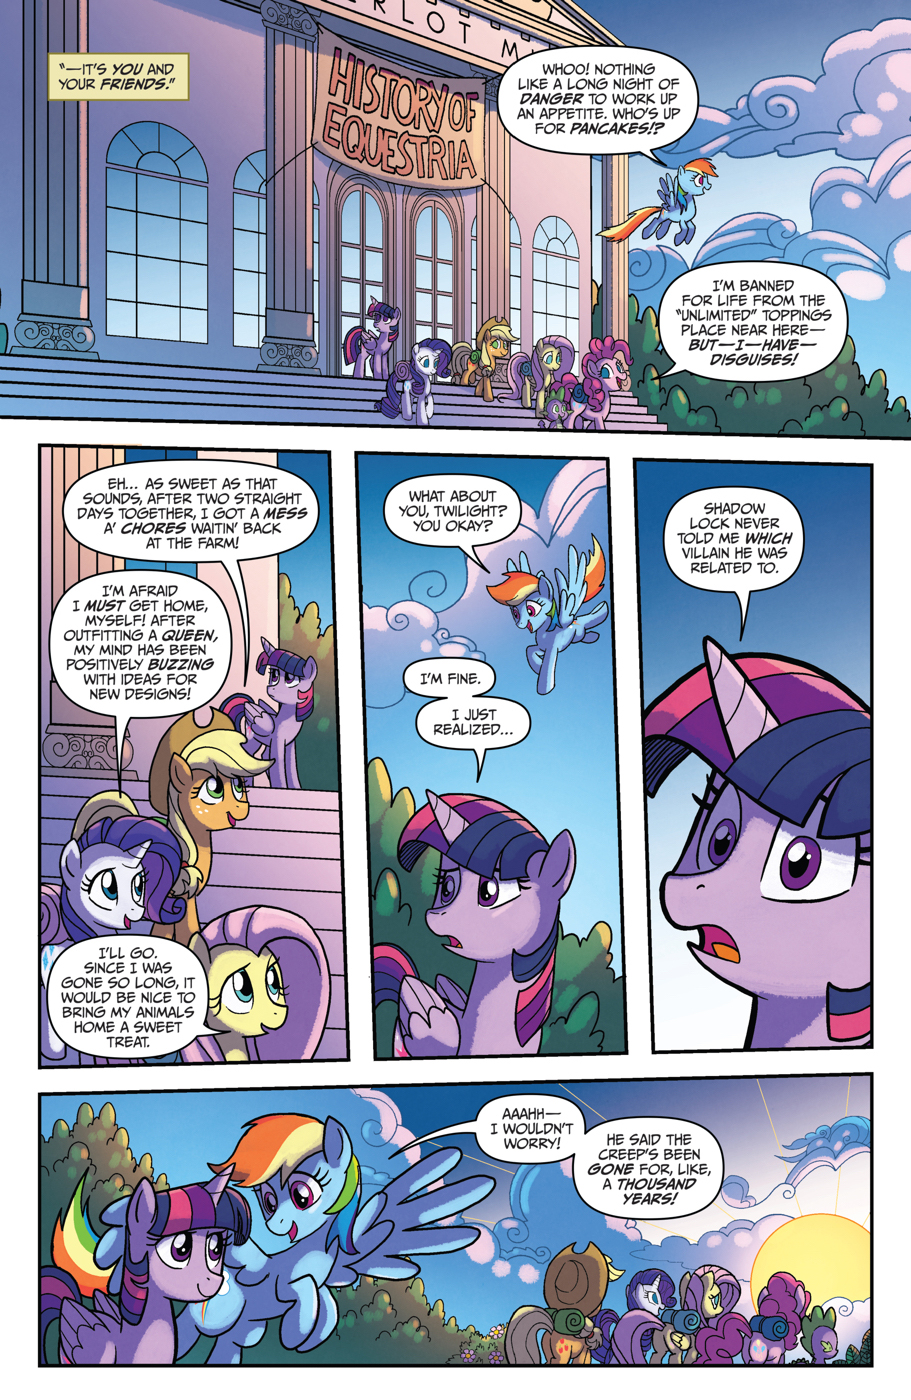 Read online My Little Pony: Friendship is Magic comic -  Issue #53 - 21